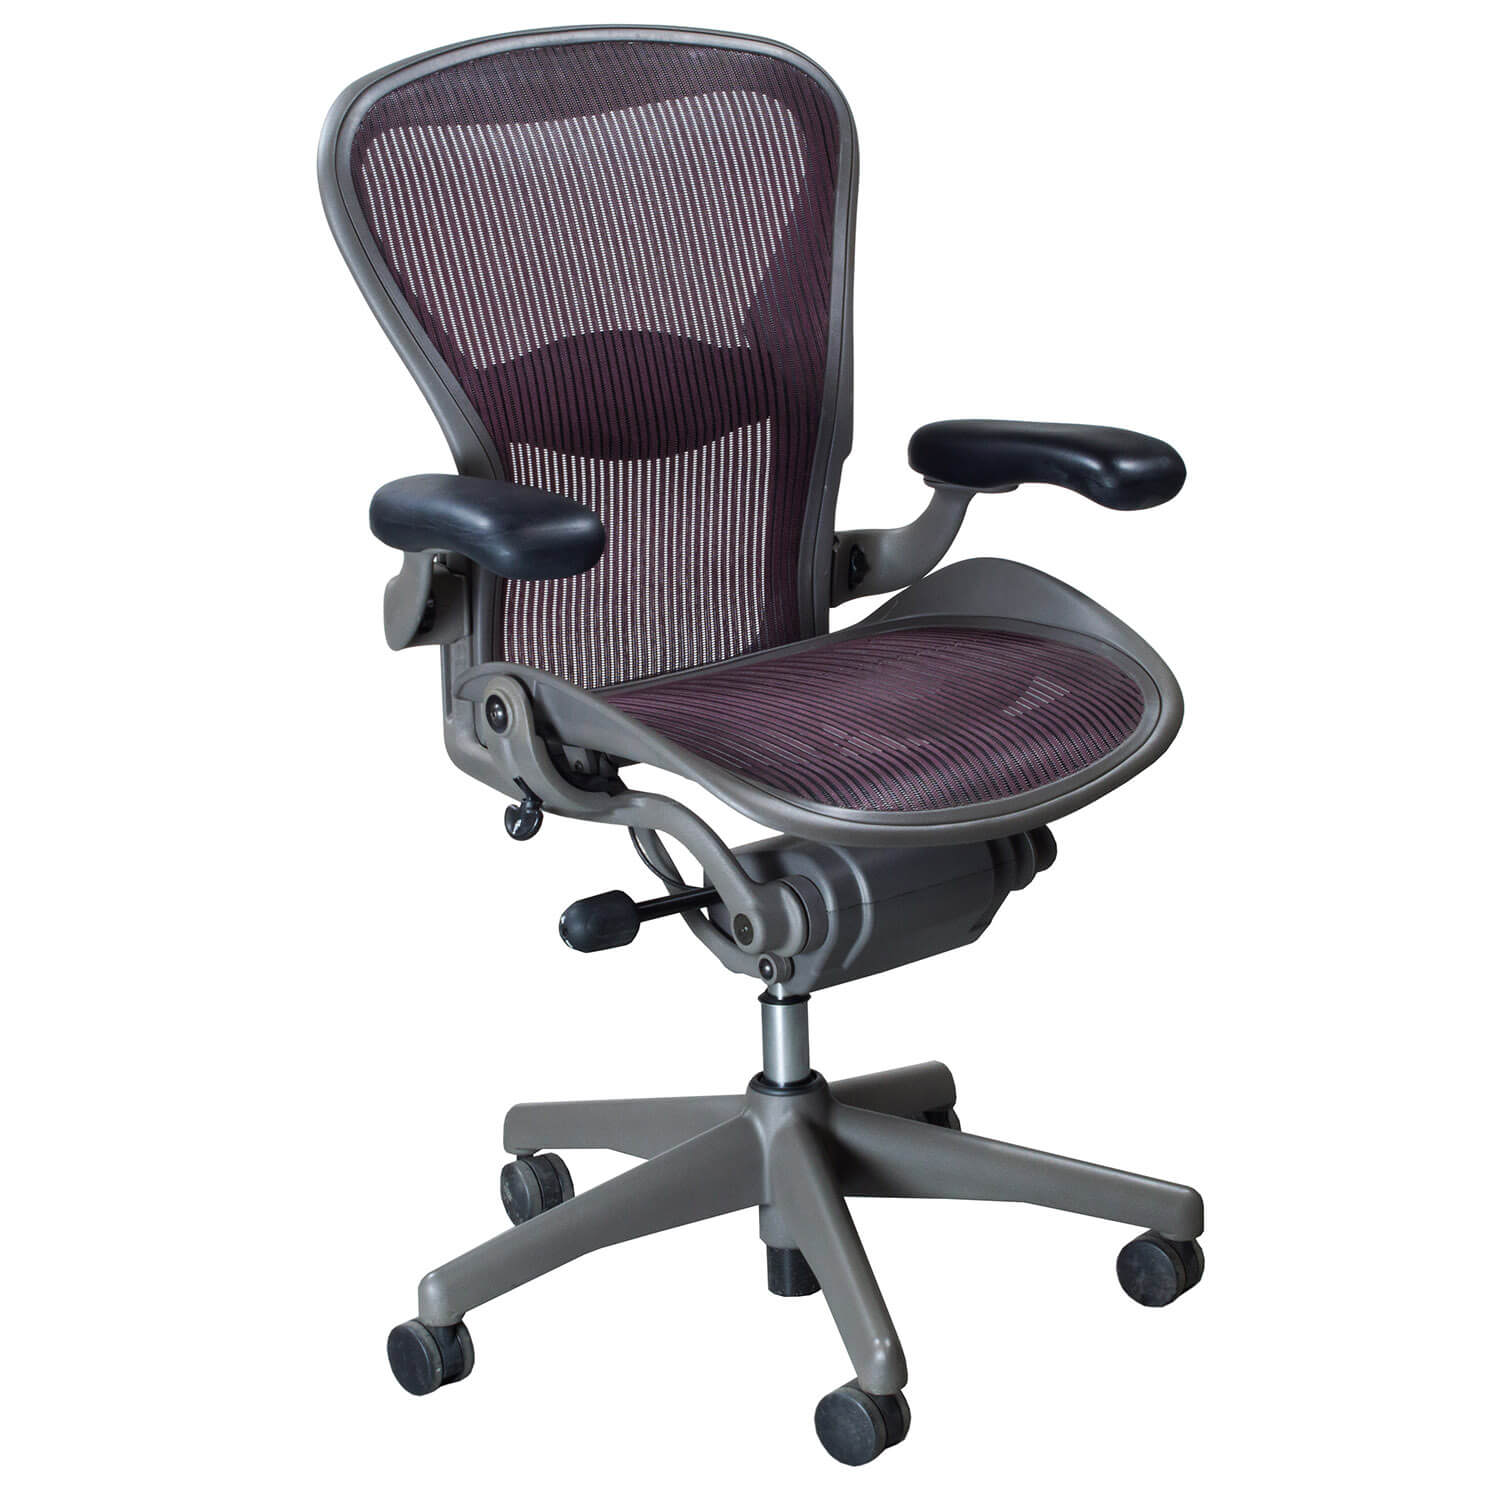 Secondhand Office Chairs #031017-cub-oss